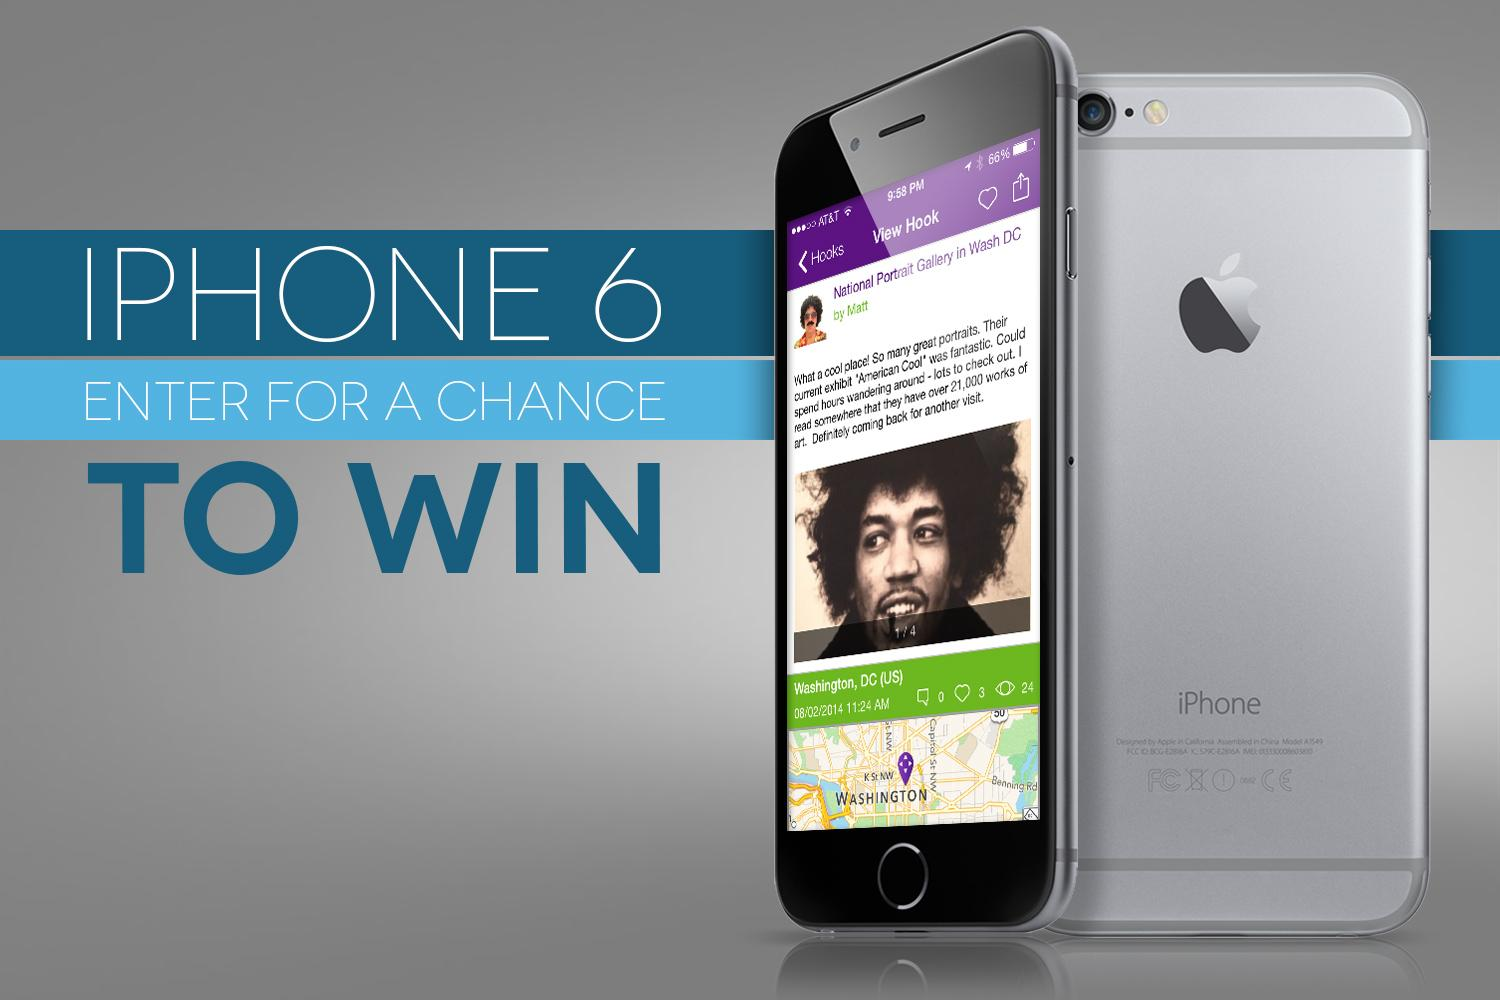 winnen iphone 6